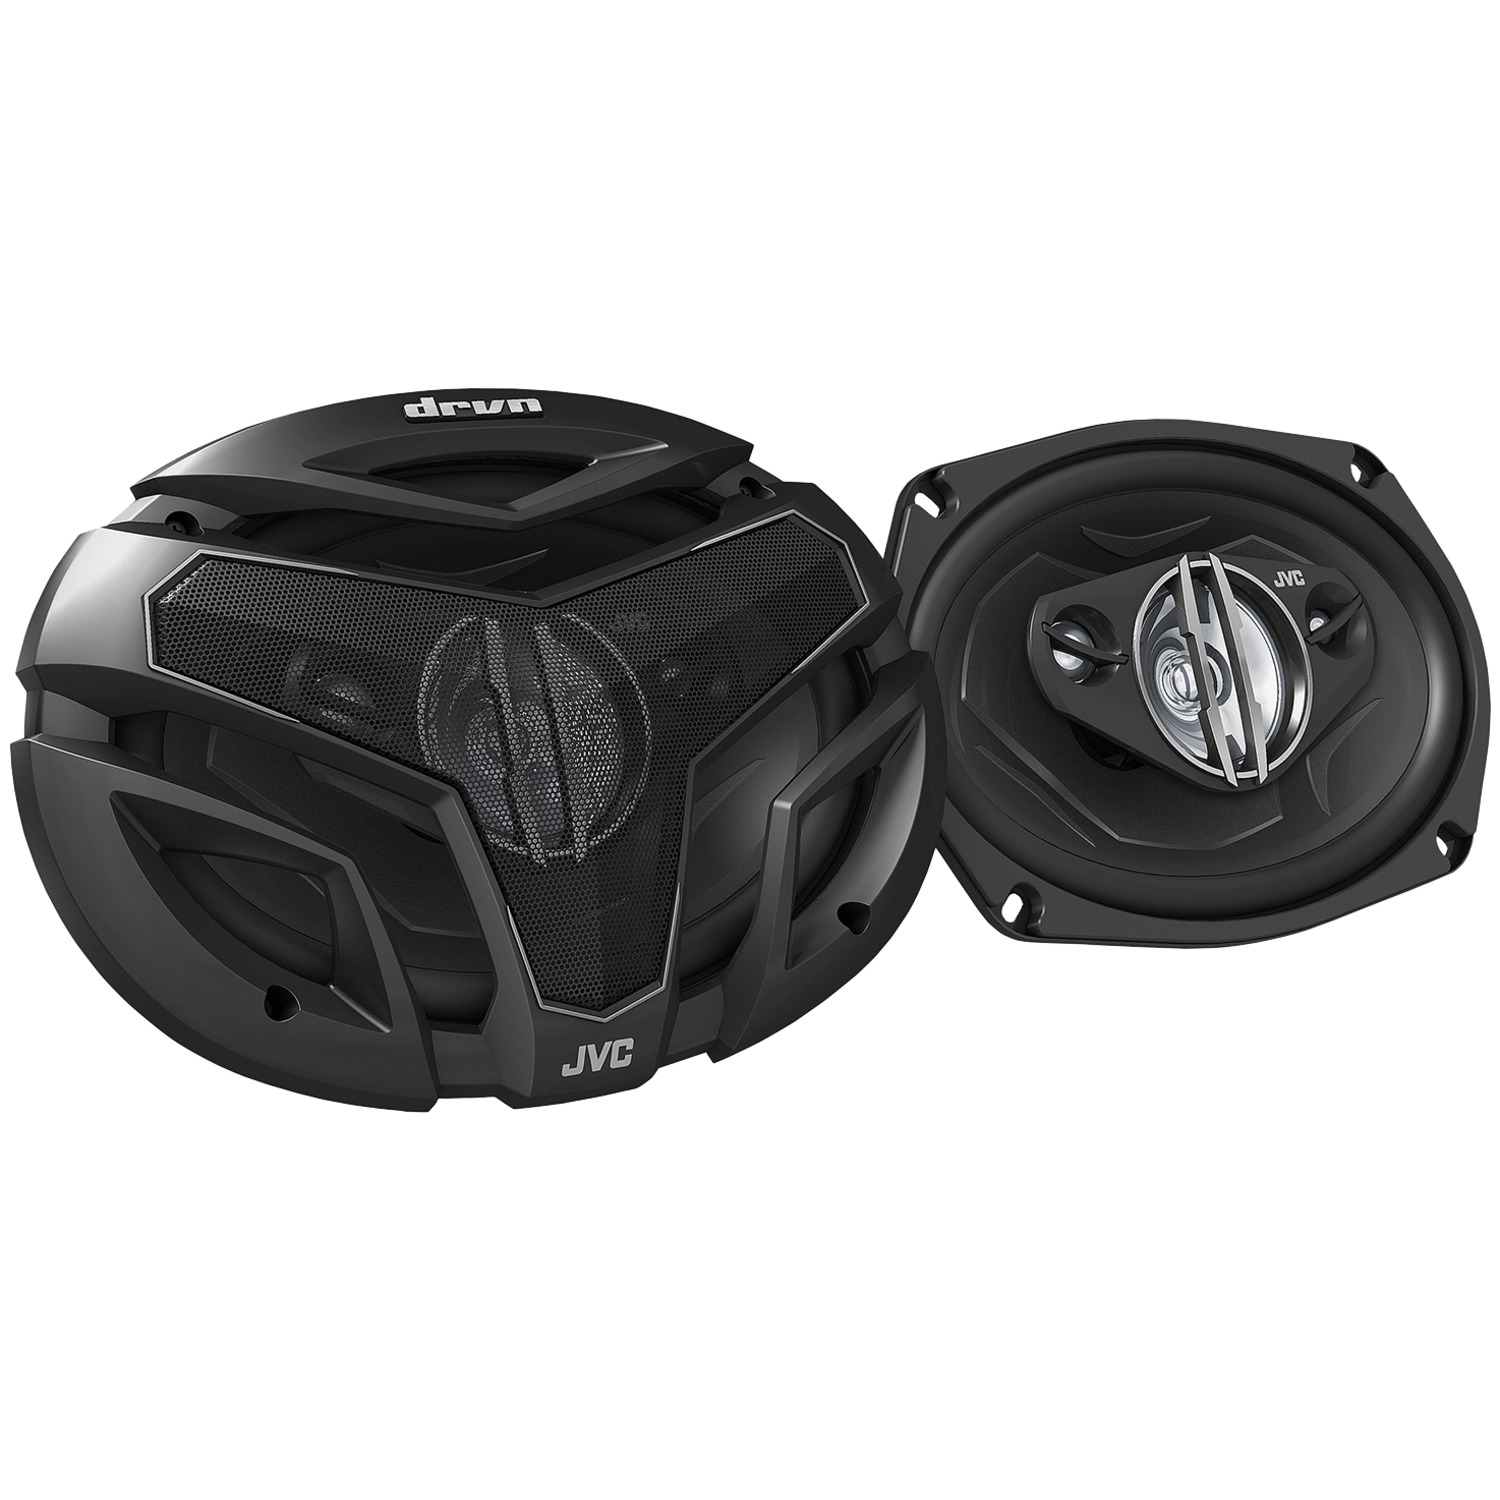 "JVC Mobile CS-ZX6940 DRVN ZX Series Coaxial Speakers (6"" x 9"", 4 Way)"